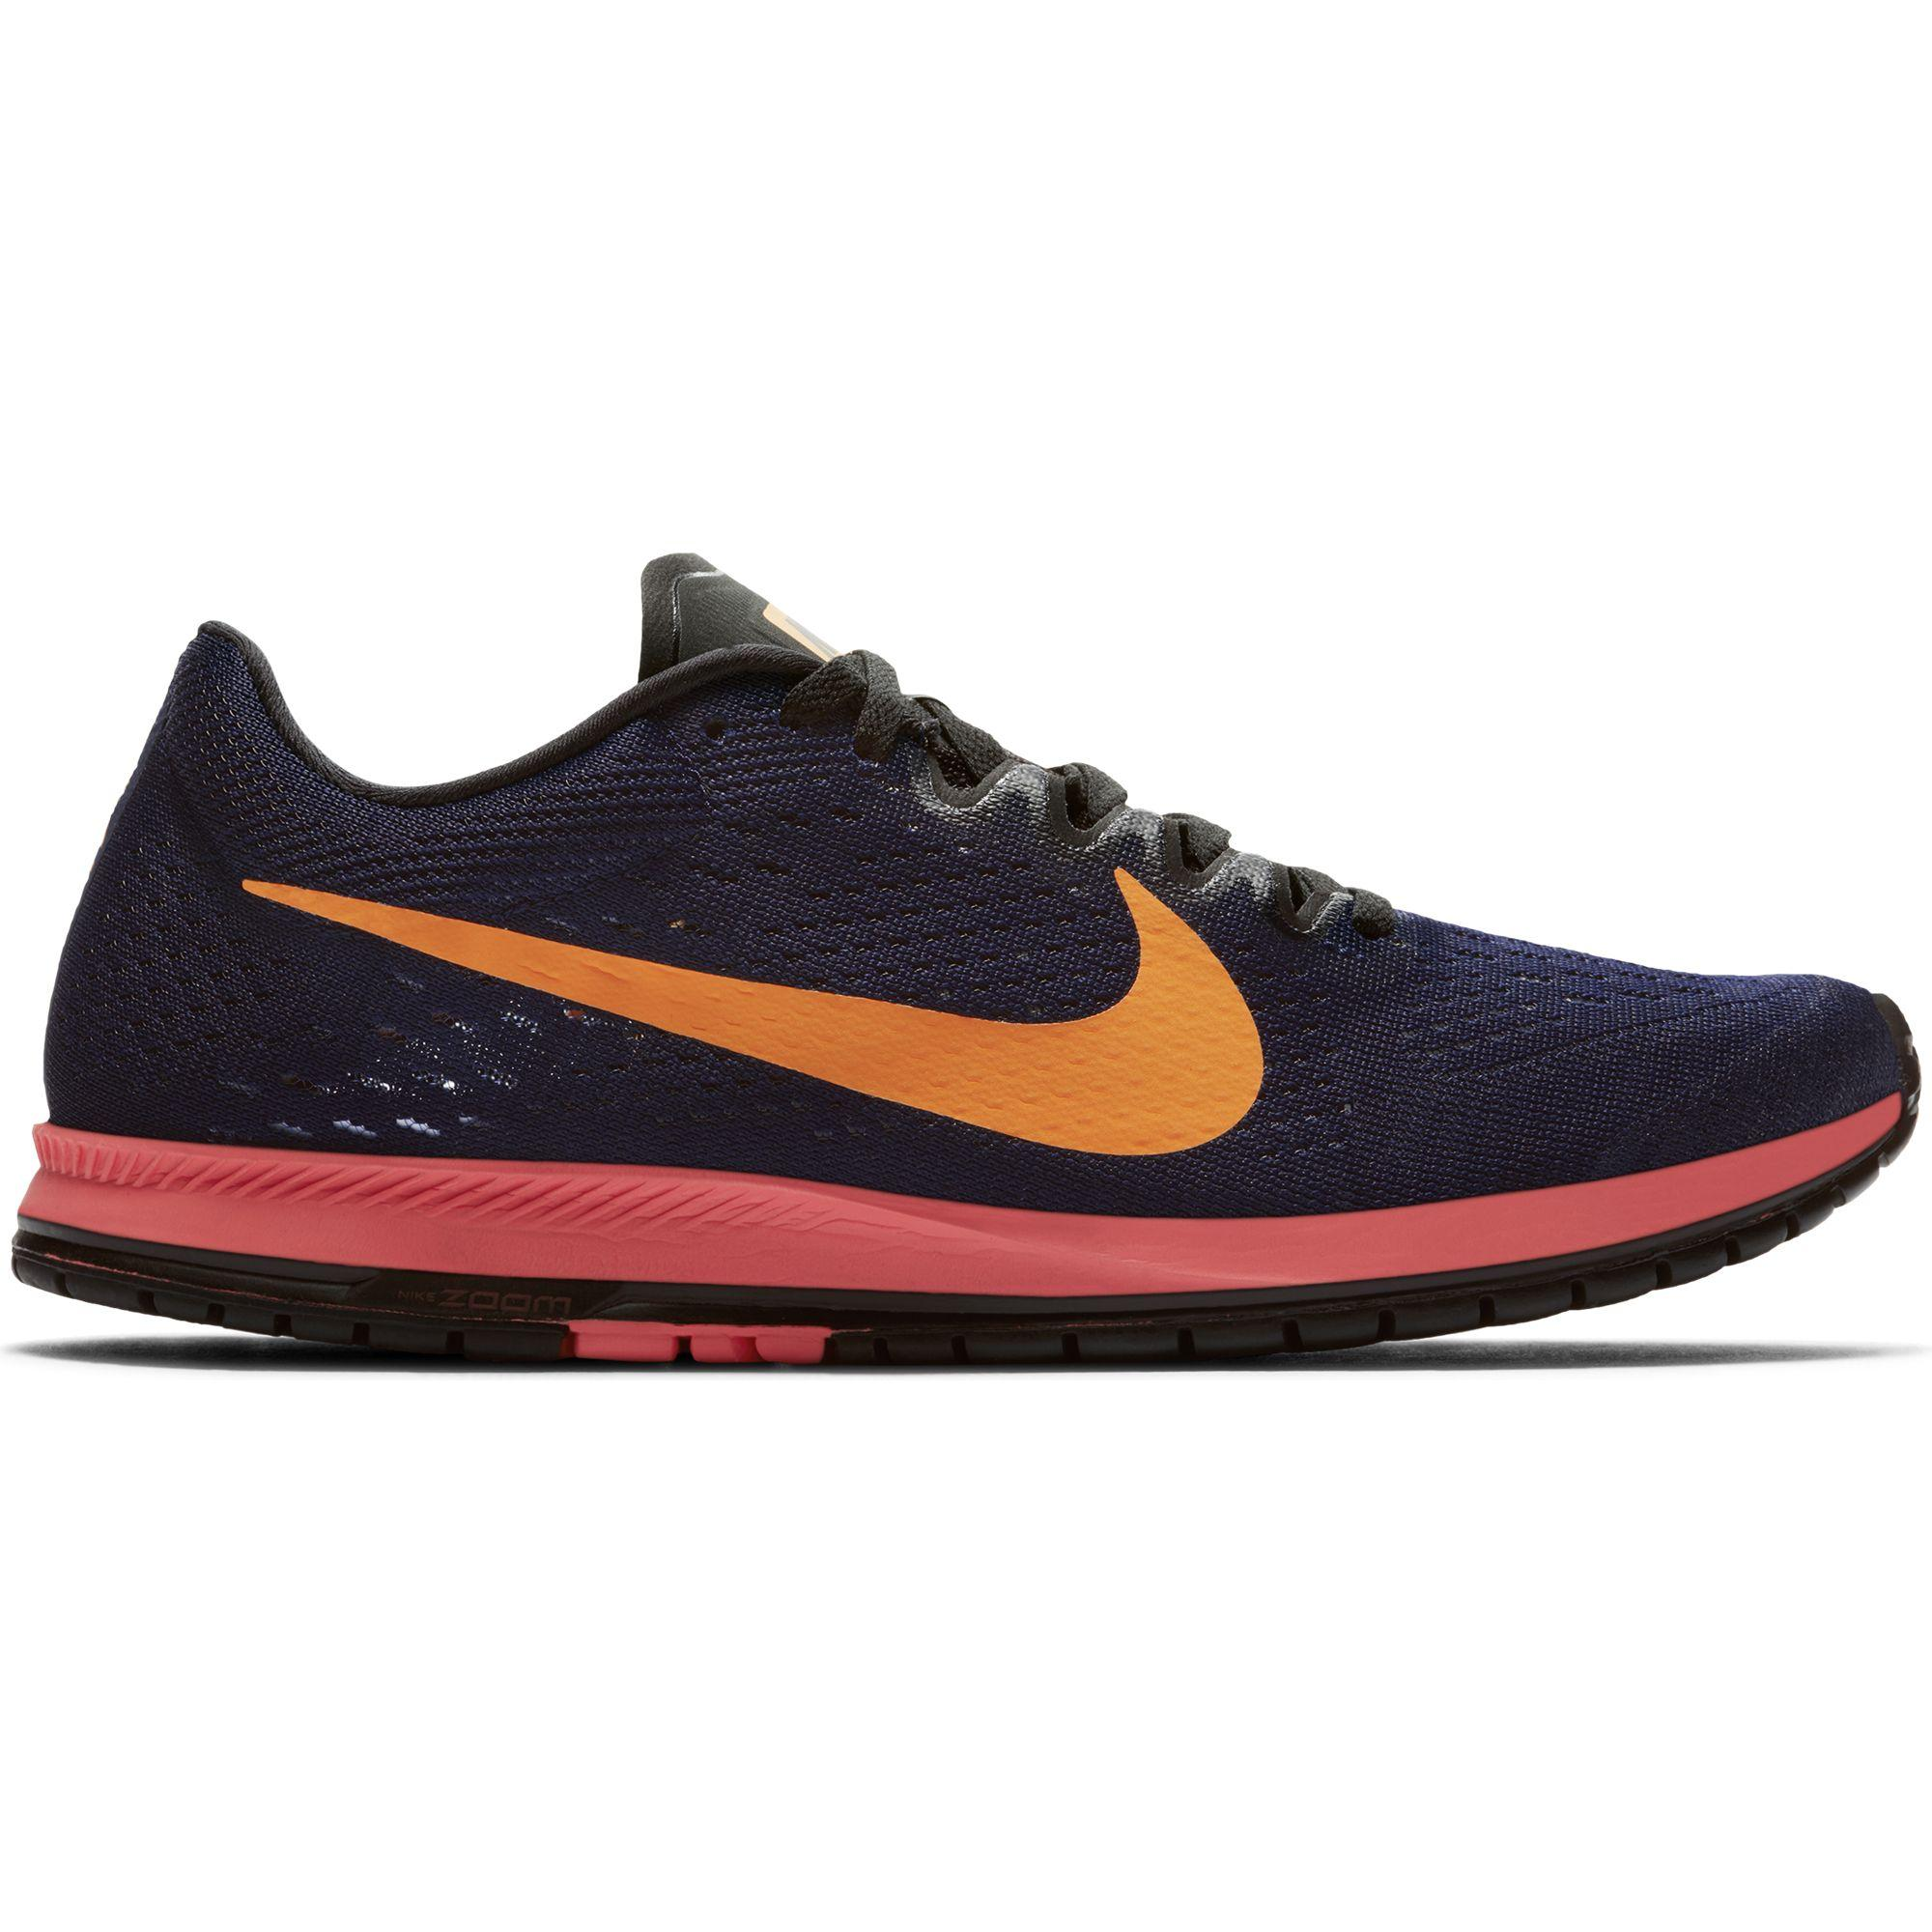 26c9c20a8caa Nike Shoes Air Zoom Streak 6 Blackened Blue orange Peel-black ...